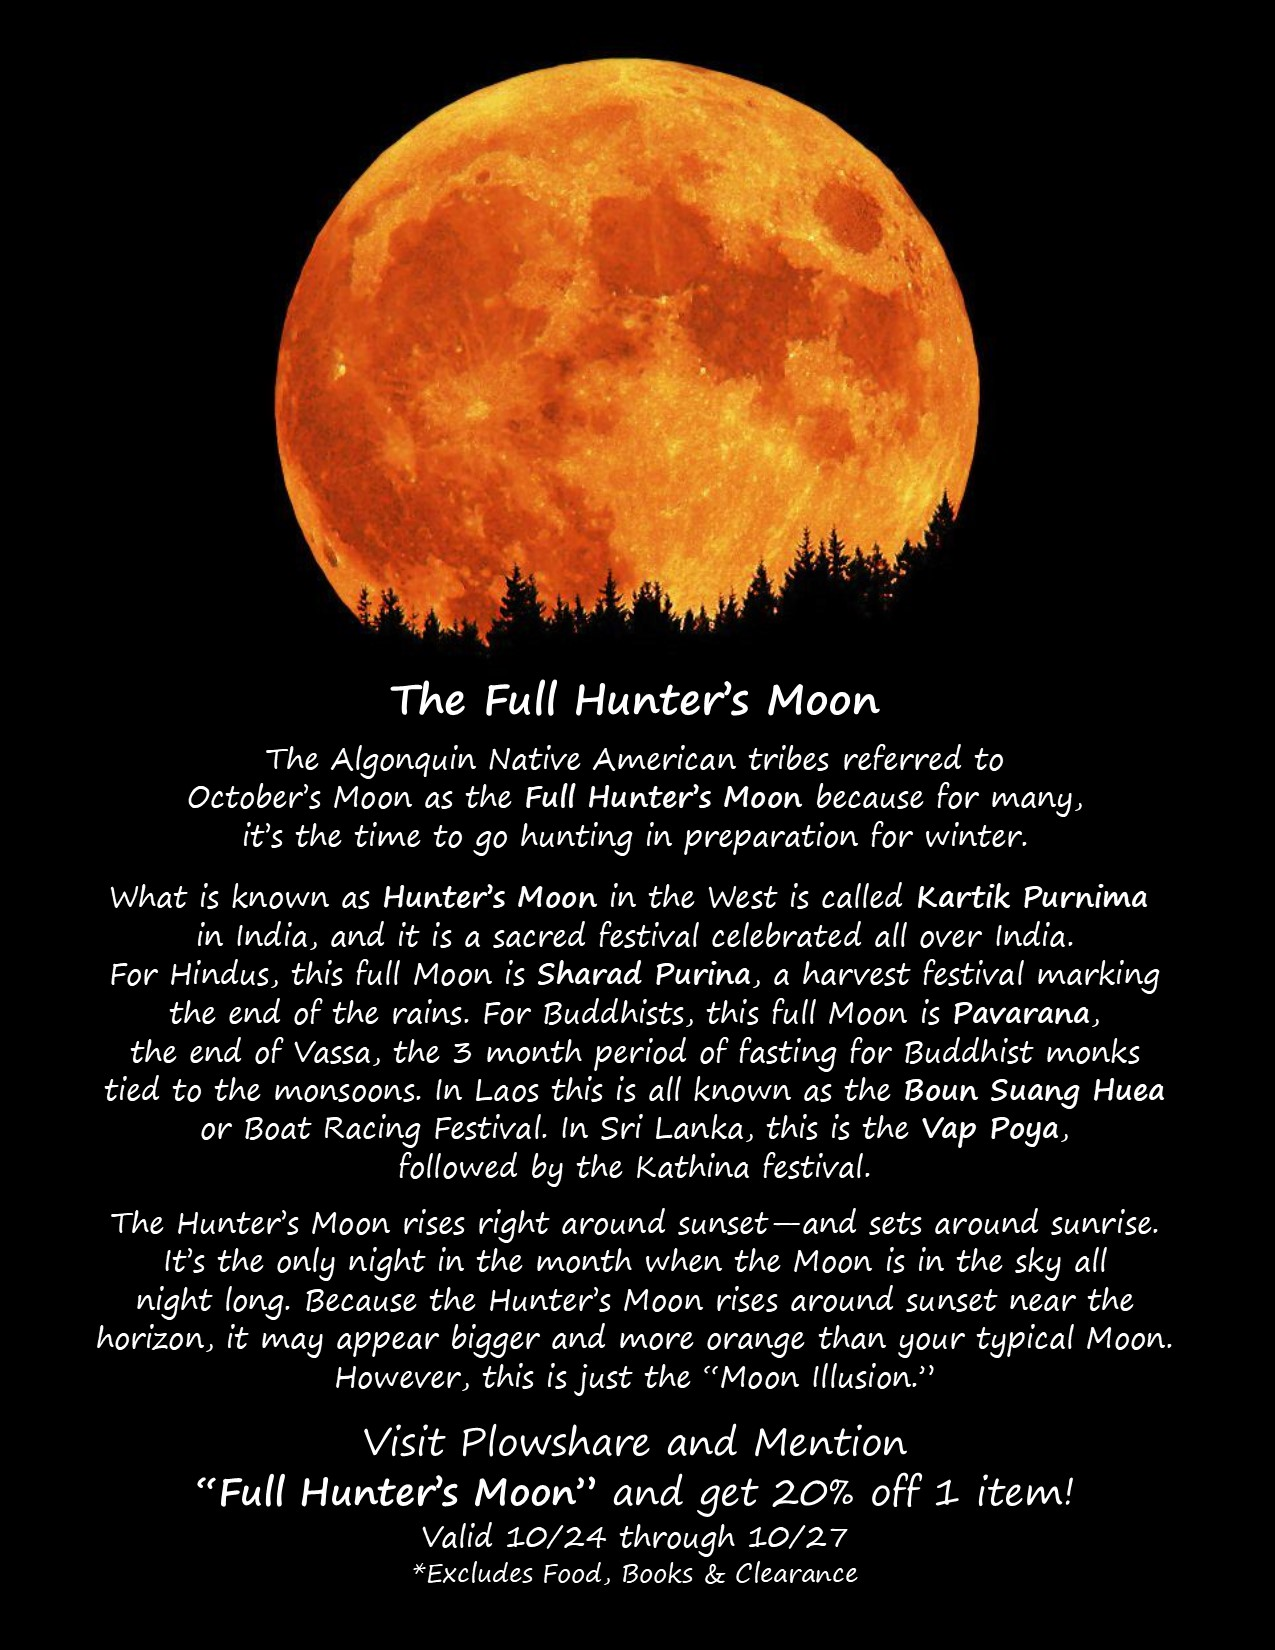 full hunters moon.jpg